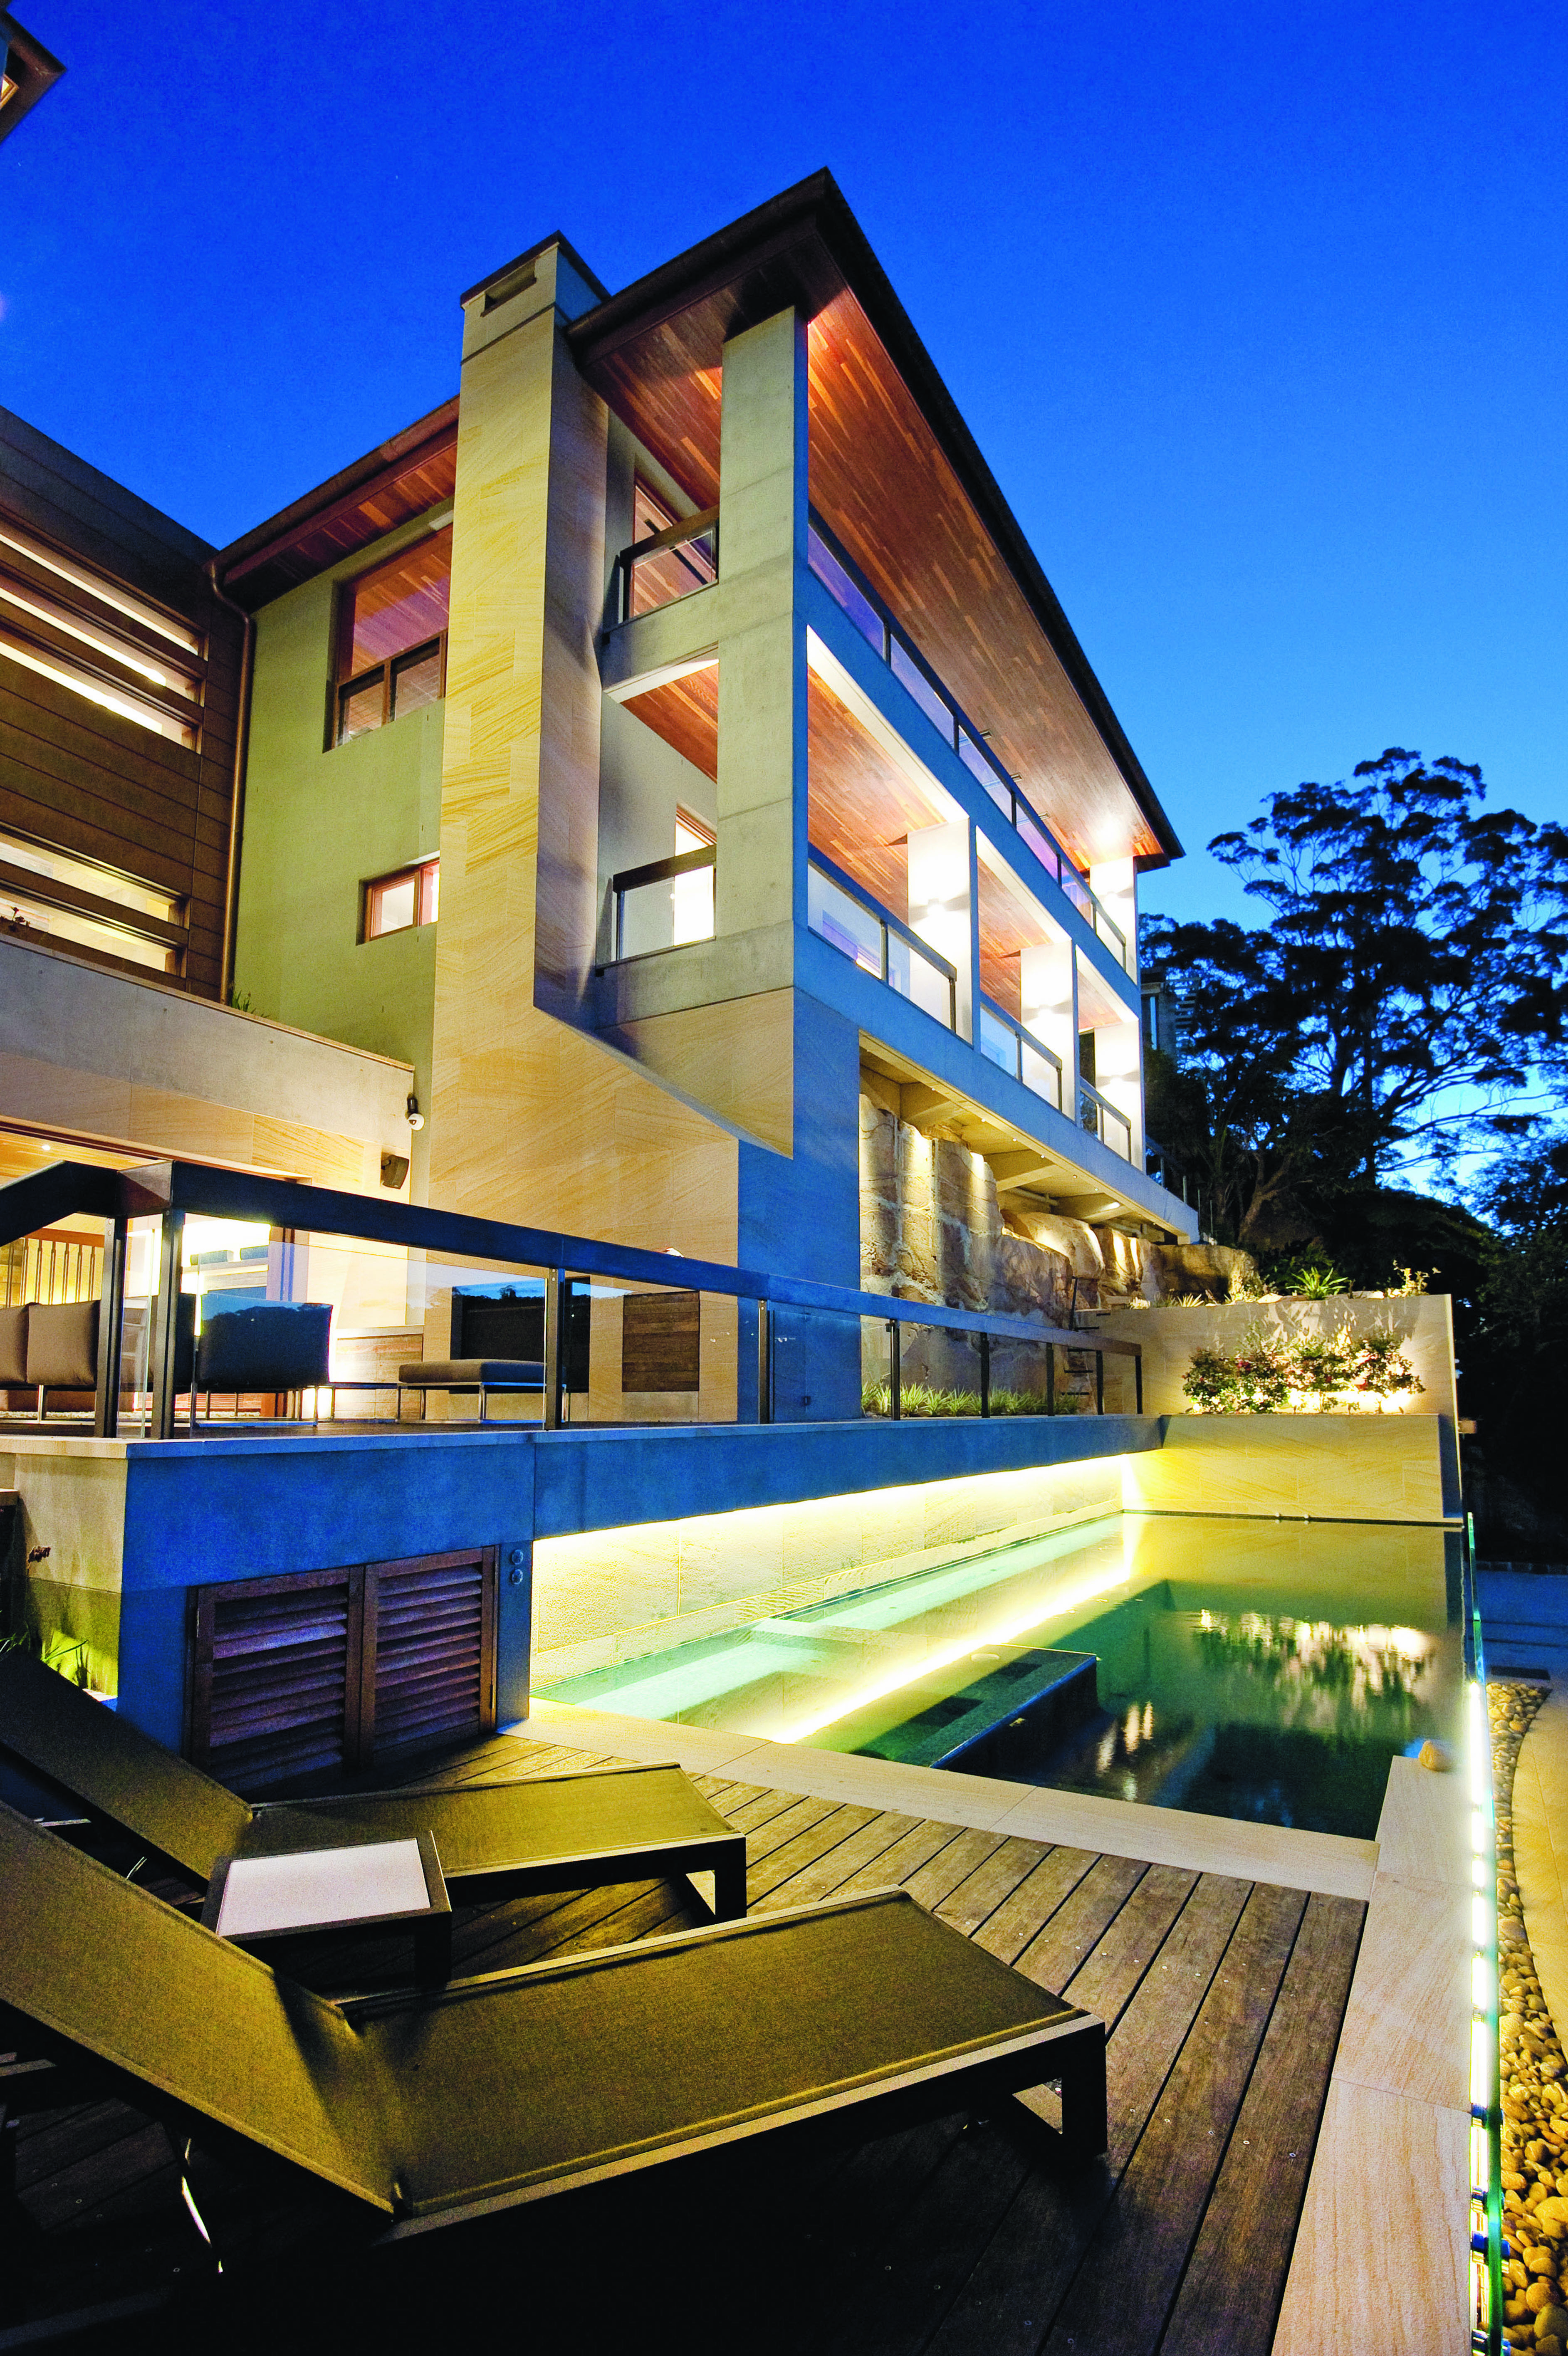 Sea of tranquility: a magic infinity pool - Best Homes